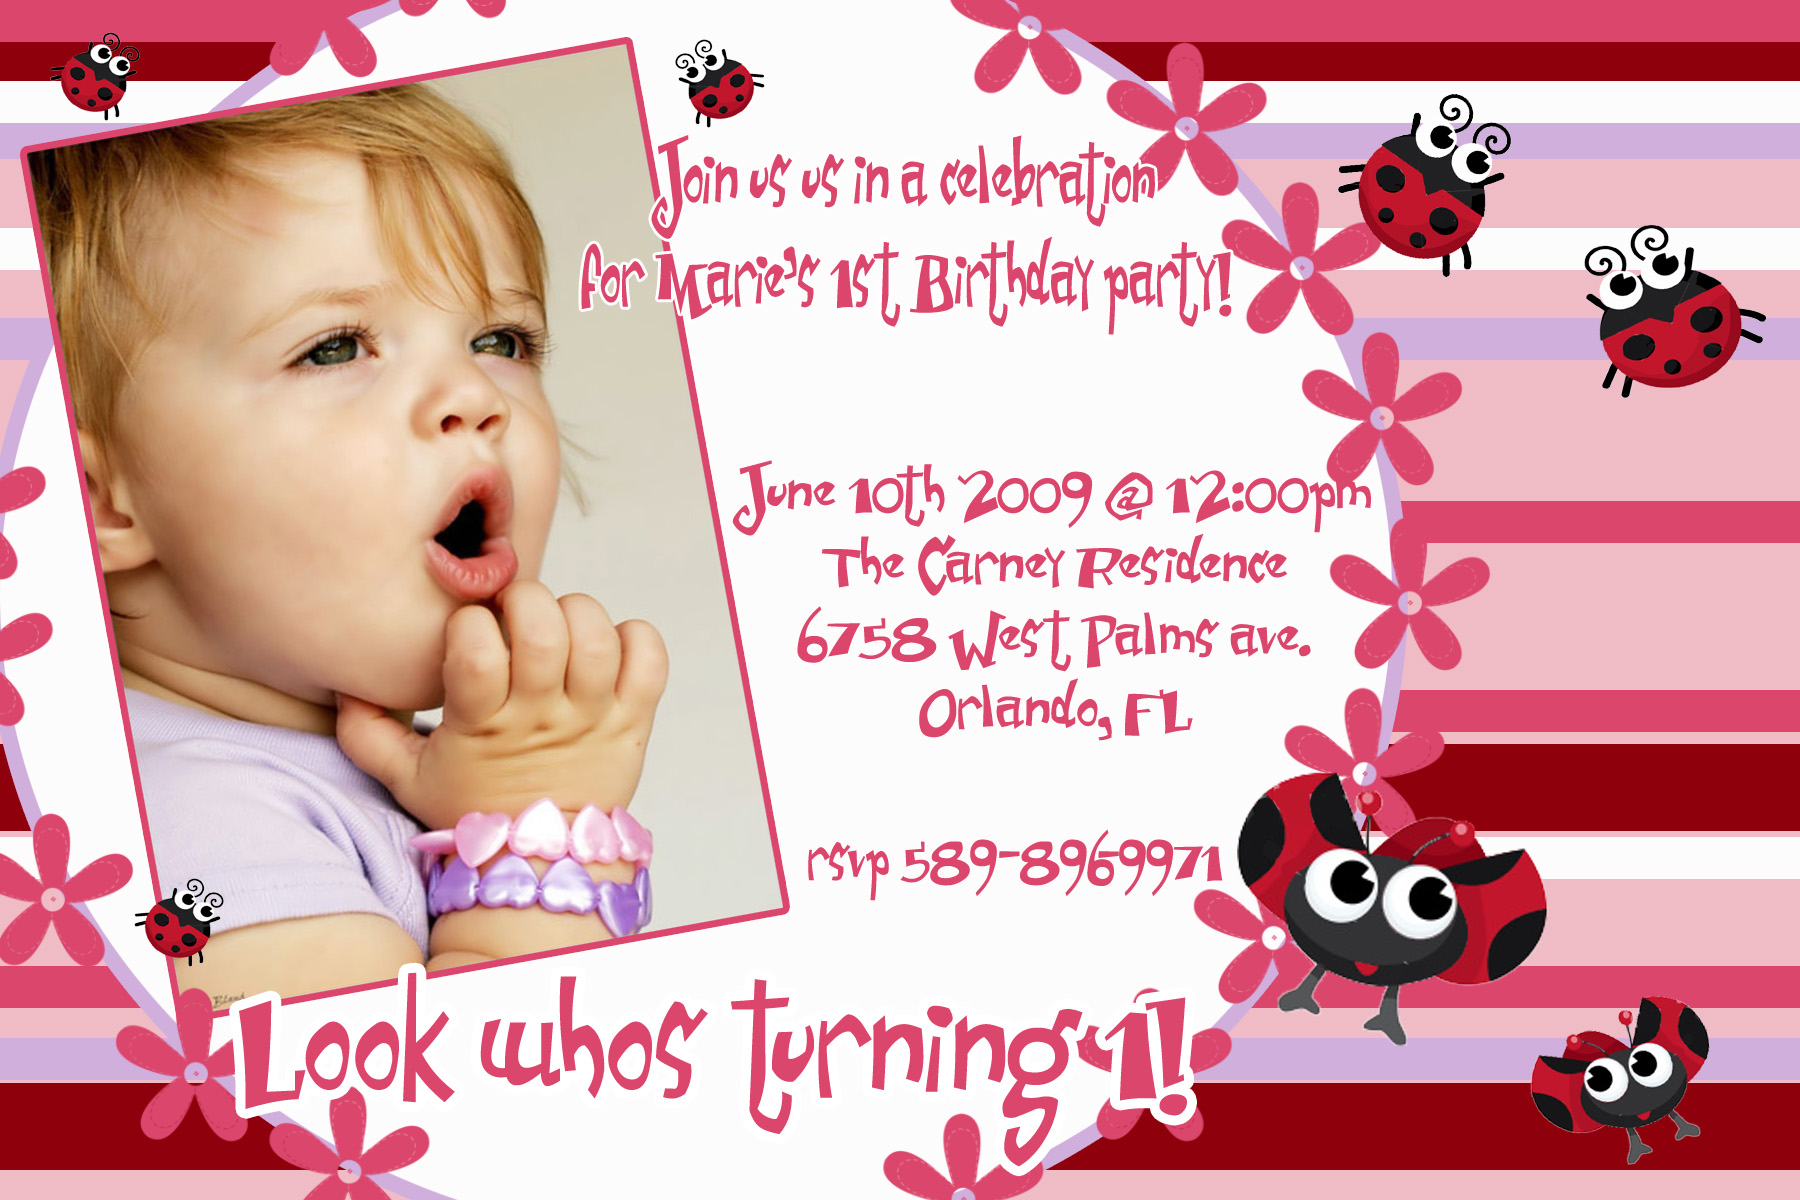 create an birthday invitation card ; birthday%2520invitation%2520card%2520design%2520;%2520Birthday-Invitations-Cards-to-inspire-you-how-to-create-the-birthday-Card-with-the-best-way-1